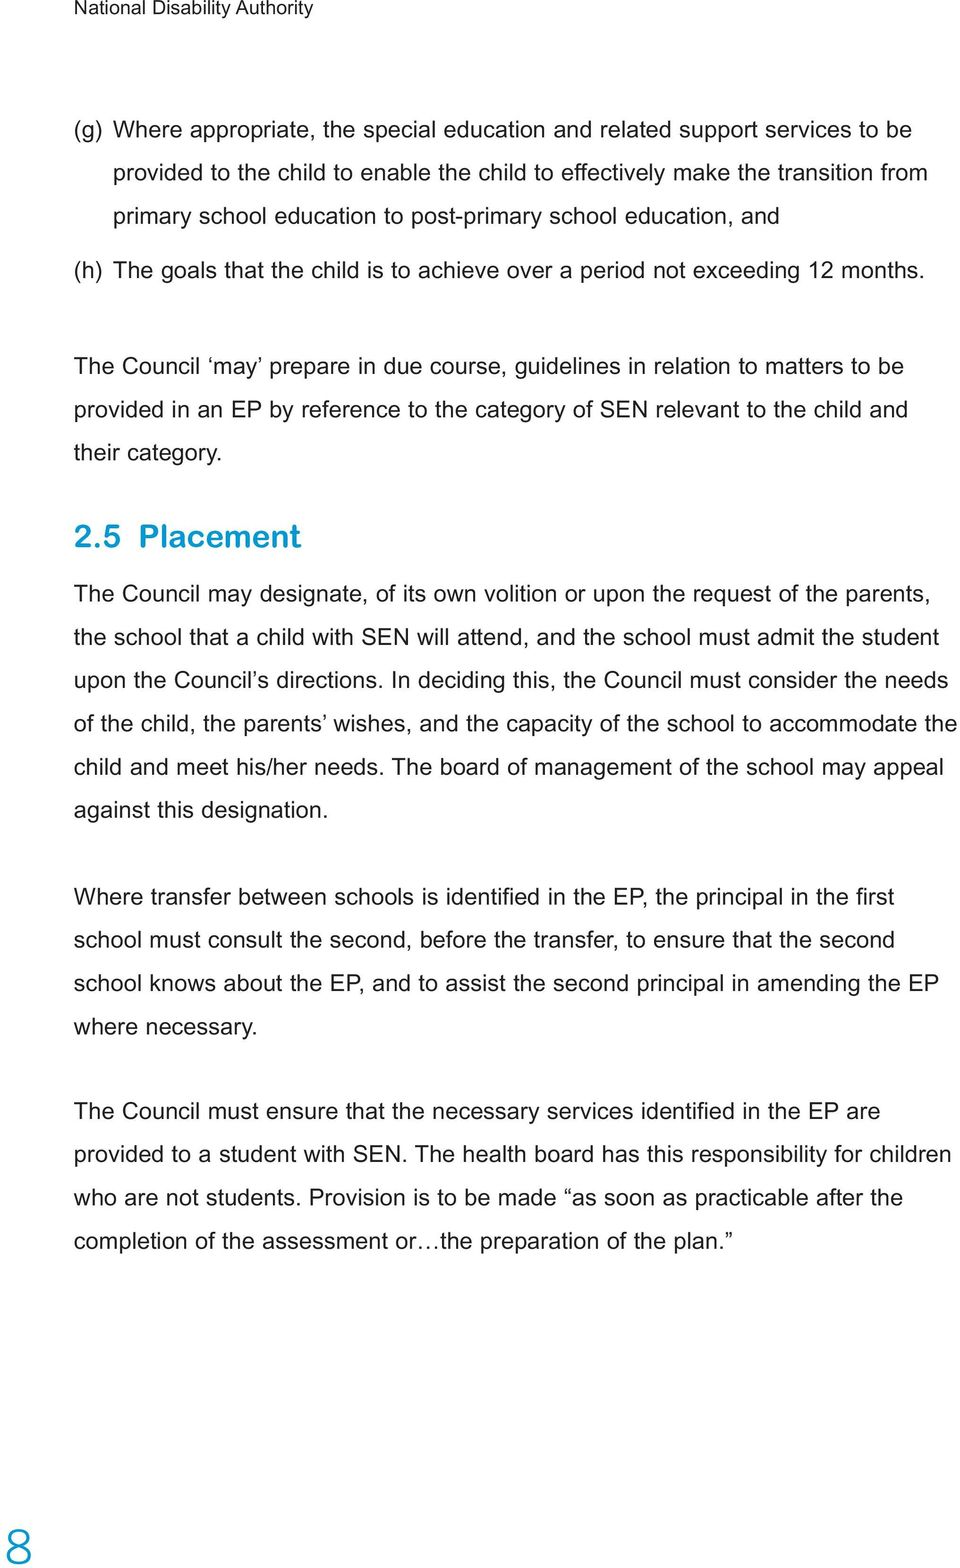 The Council may prepare in due course, guidelines in relation to matters to be provided in an EP by reference to the category of SEN relevant to the child and their category. 2.